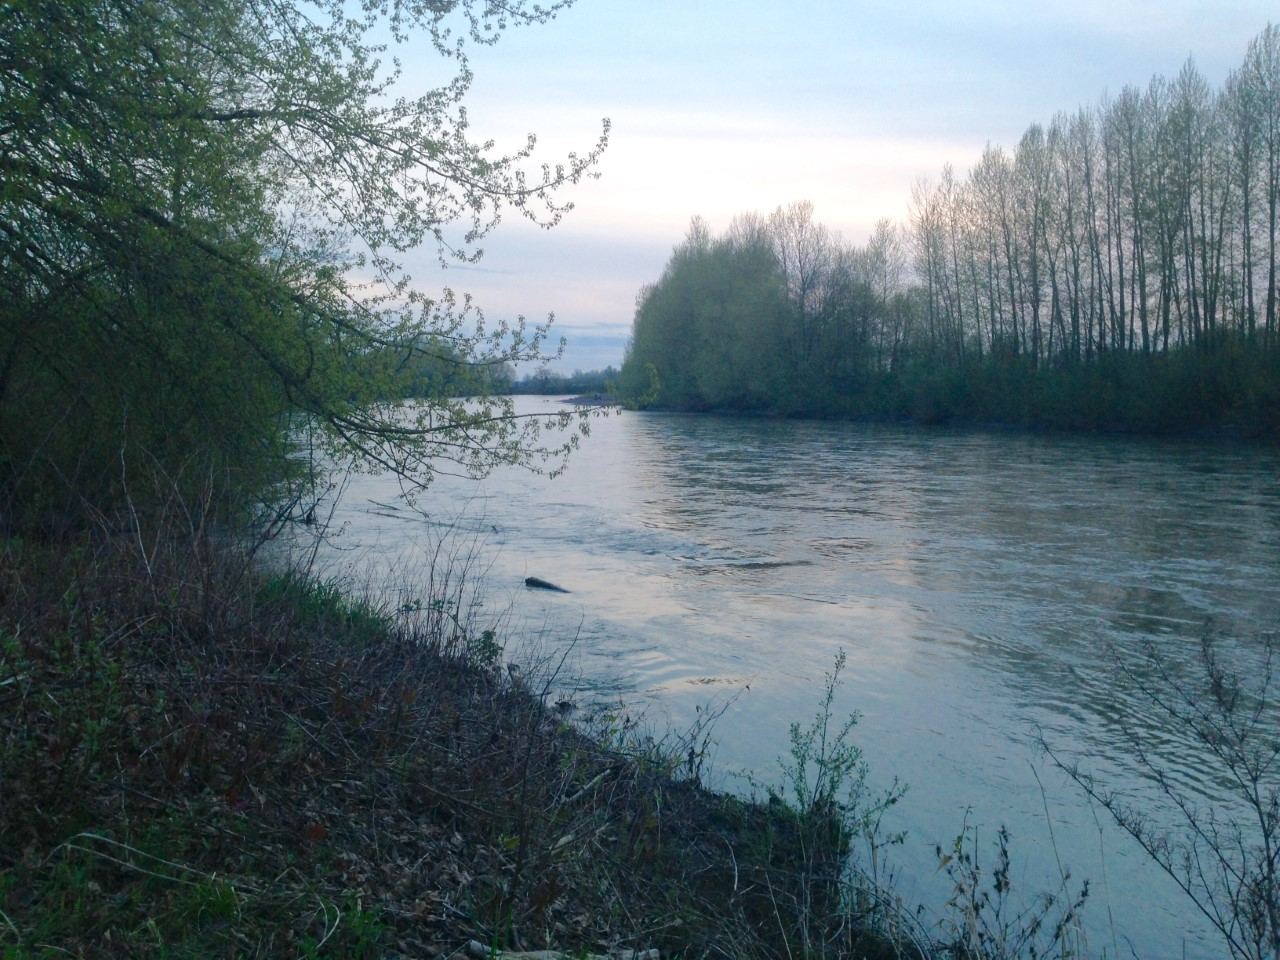 Flood watch issued for Nooksack River.